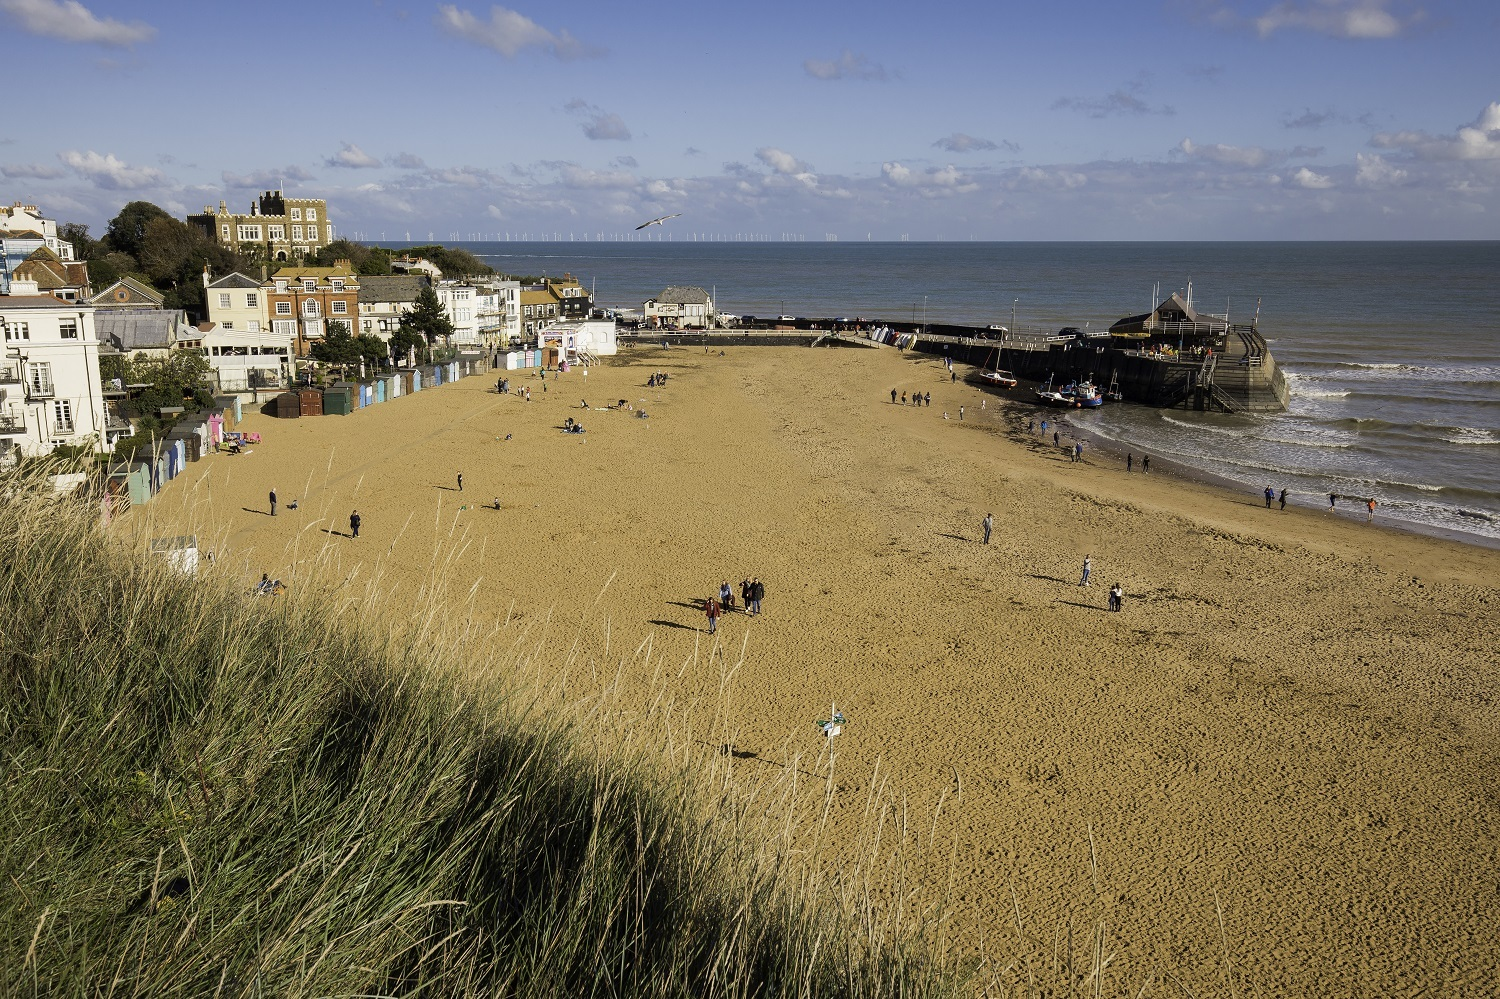 Viking Bay, Broadstairs